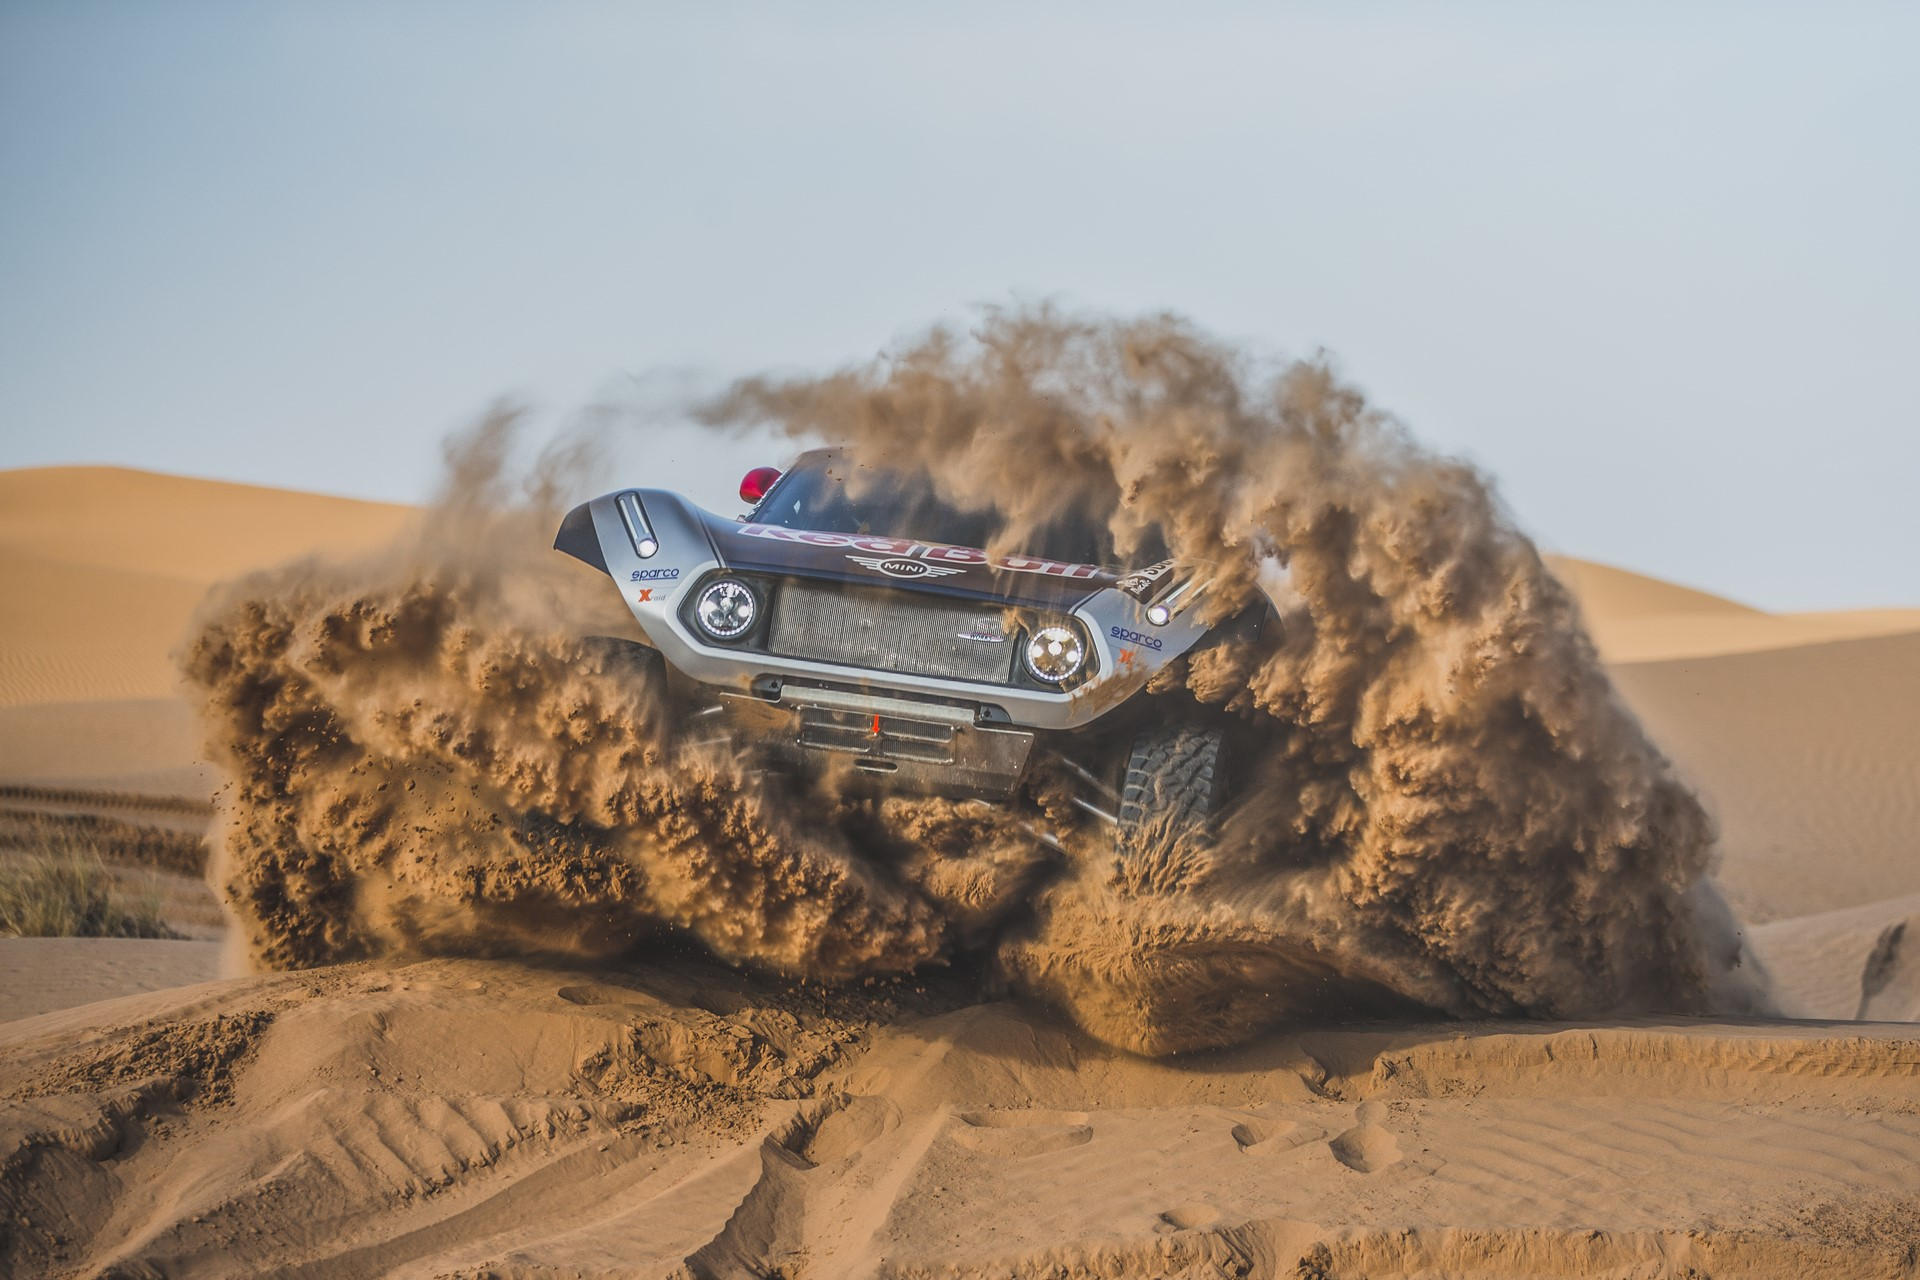 Cyril Despres (FRA) performs aboard the X-raid MINI JCW in Erfoud , Morocco on September 23, 2018